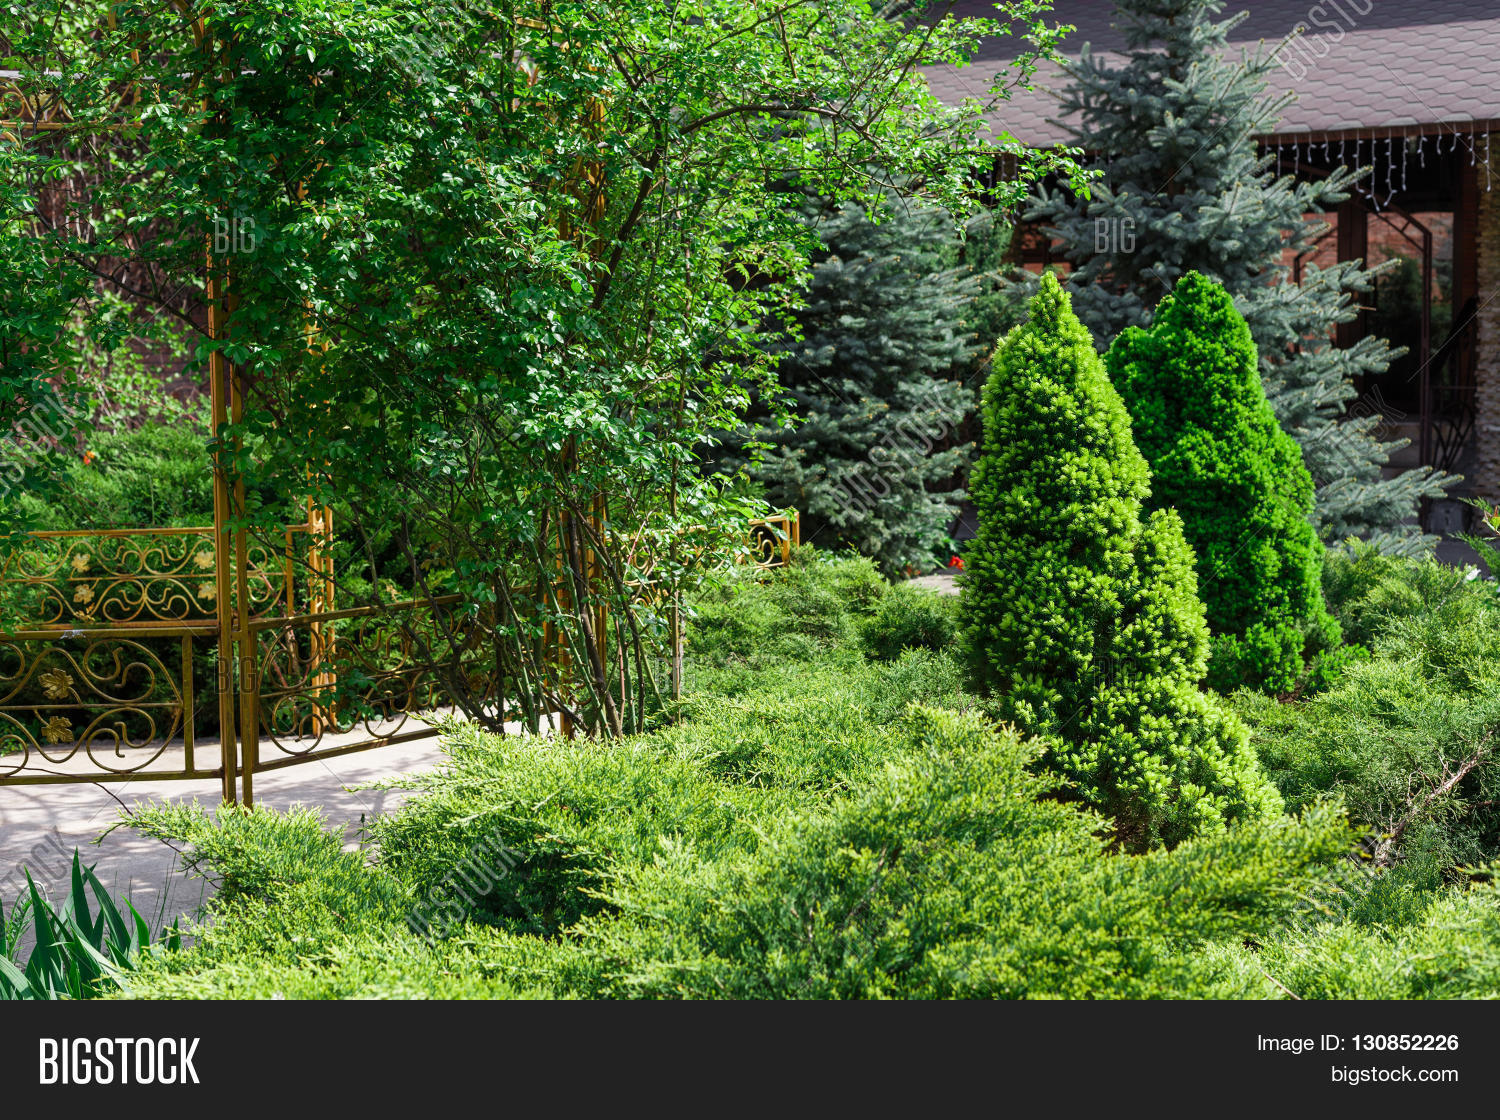 Beautiful Landscape Design Evergreen Trees And Shrubs In Sunlight Modern Landscaping Fir